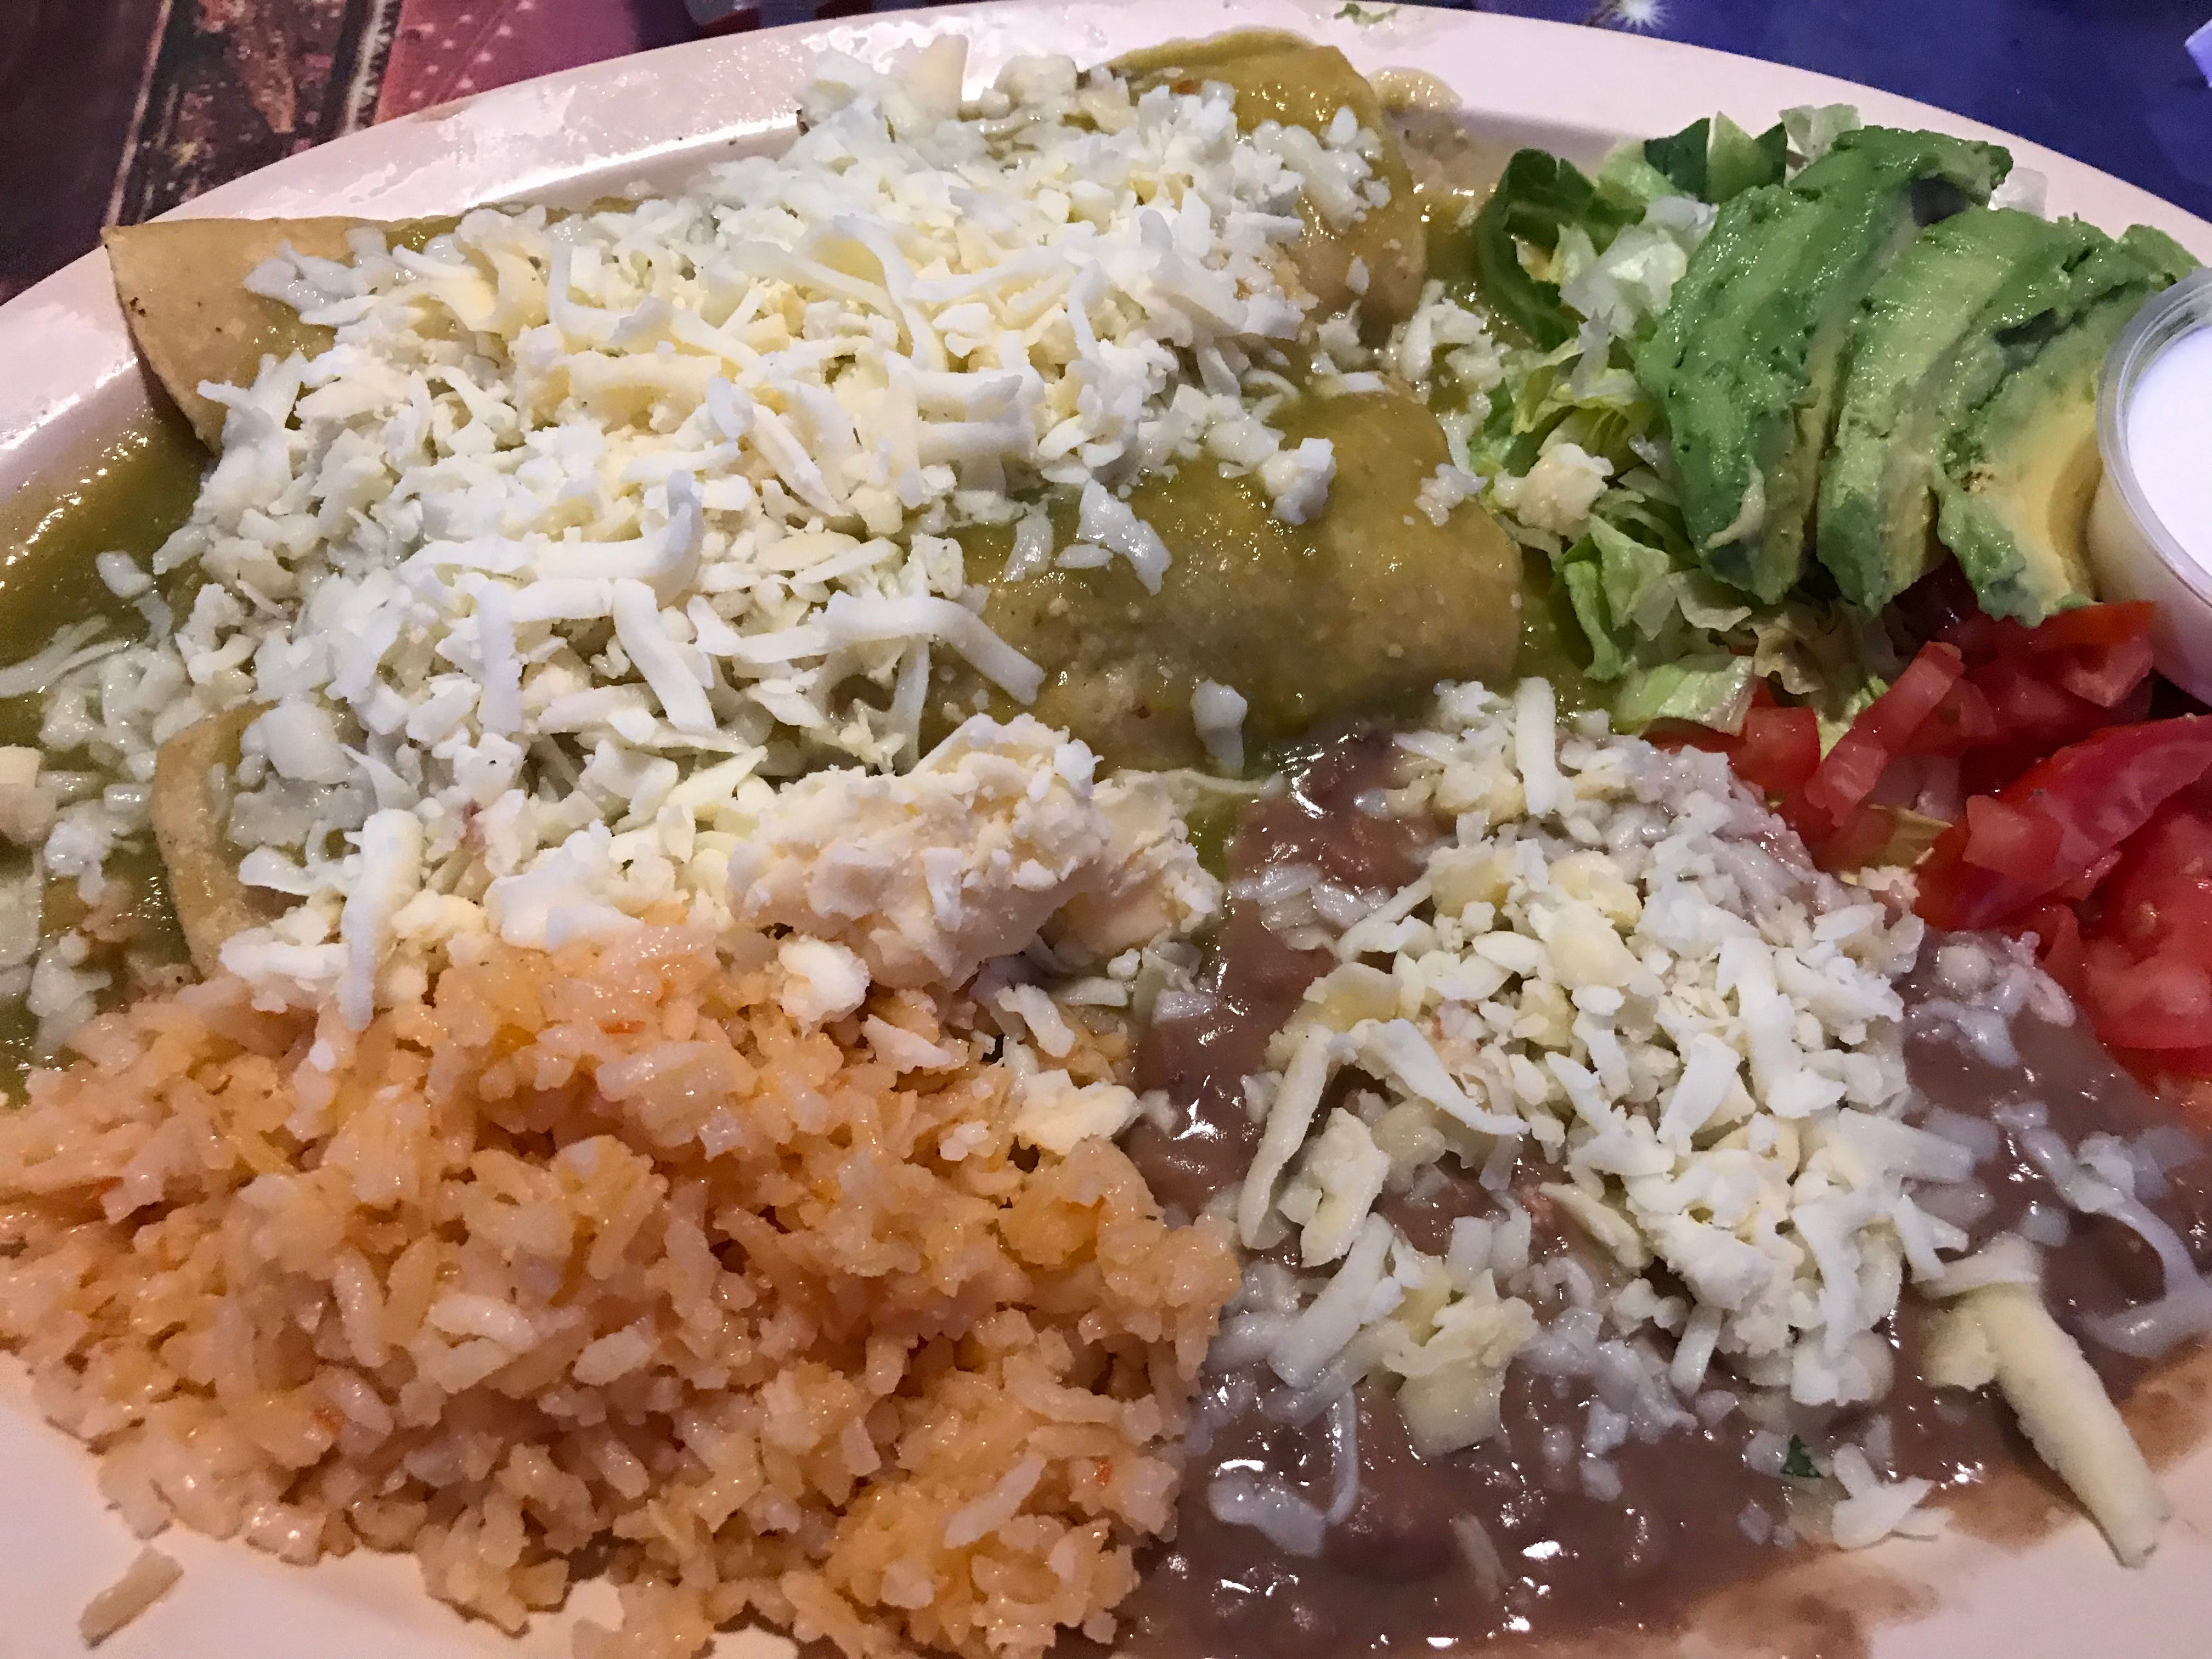 Enchilada dinners are on the menu at Chilango Express, 7030 W. Lincoln Ave., West Allis. The restaurant makes its own tortillas.